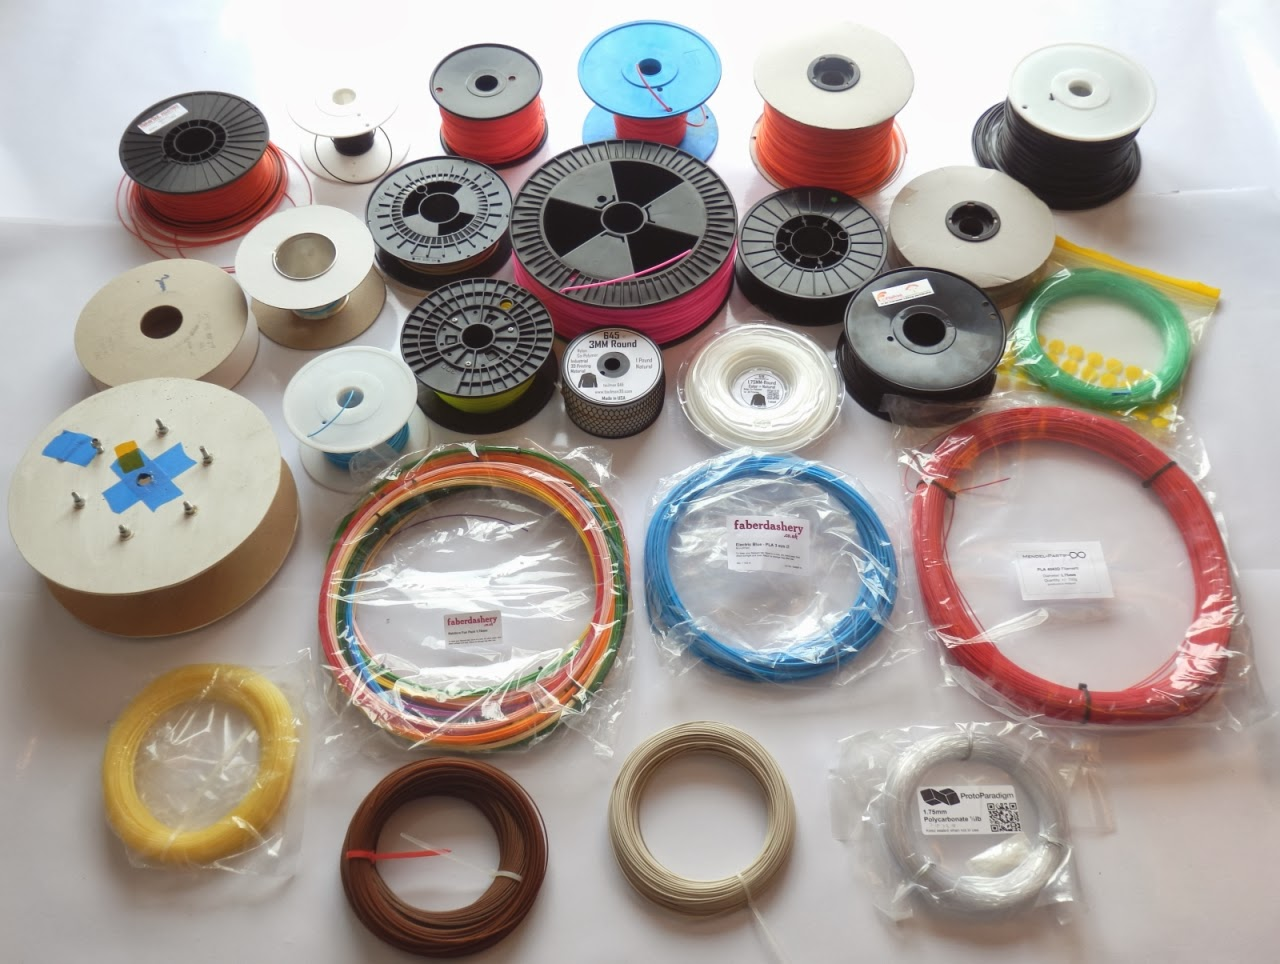 A guide to different types of 3D printer filament